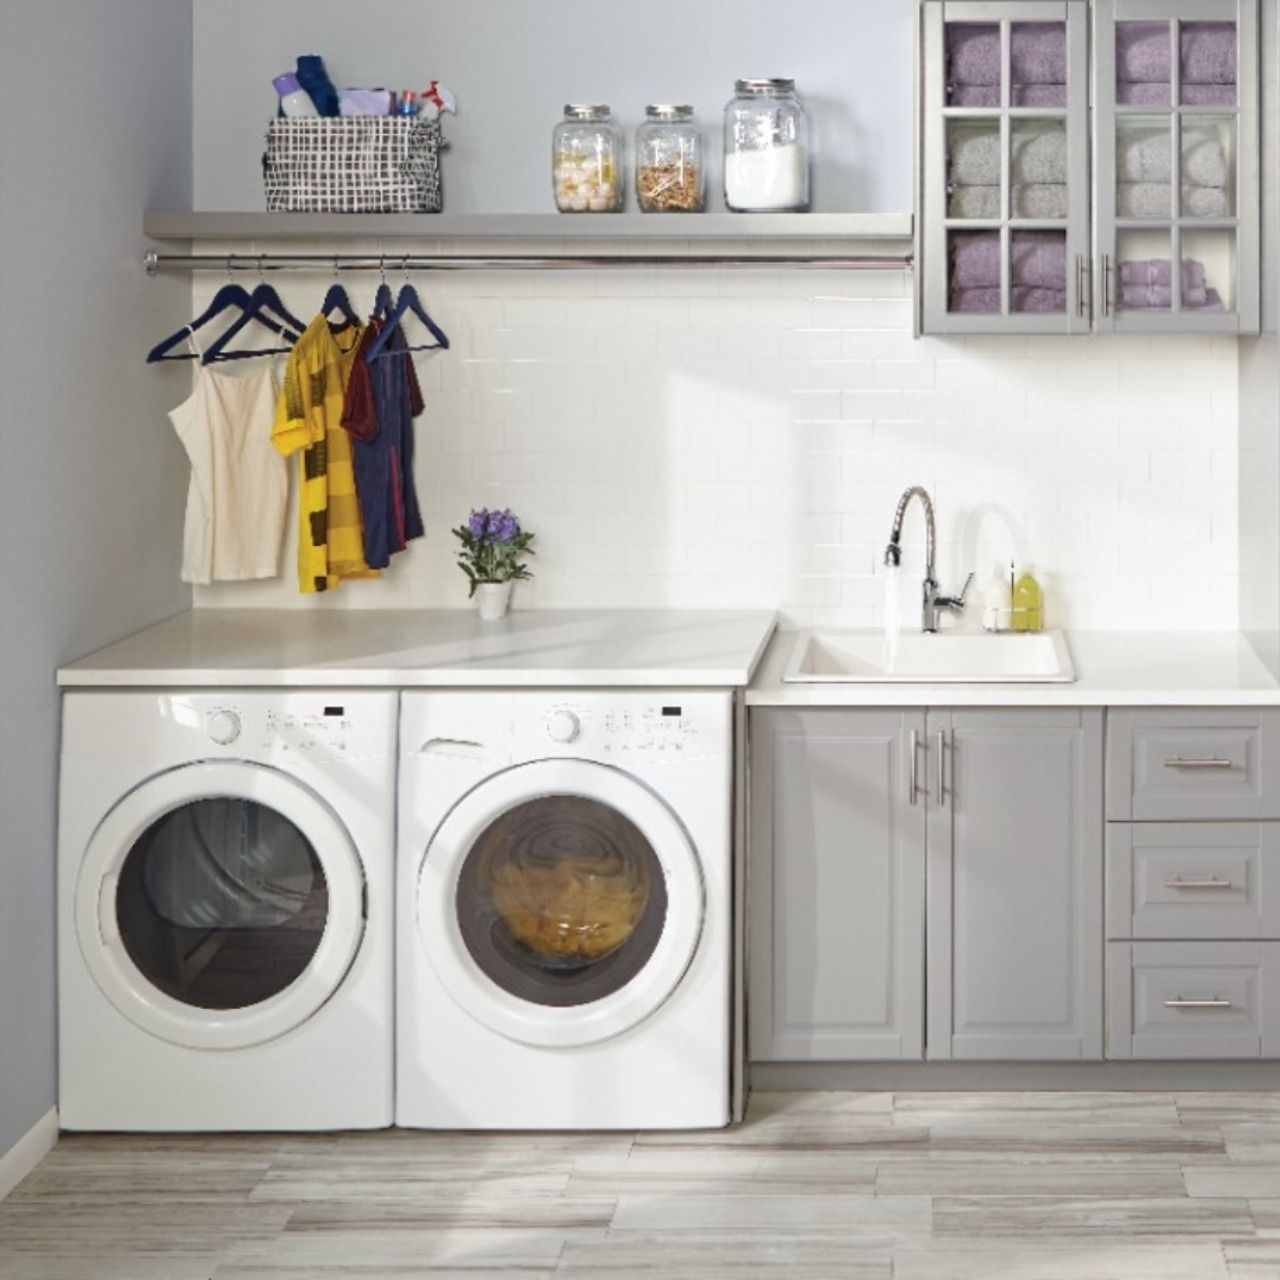 Quartz Classic For The Laundry Room In 2020 Classic Kitchens Sink Elkay